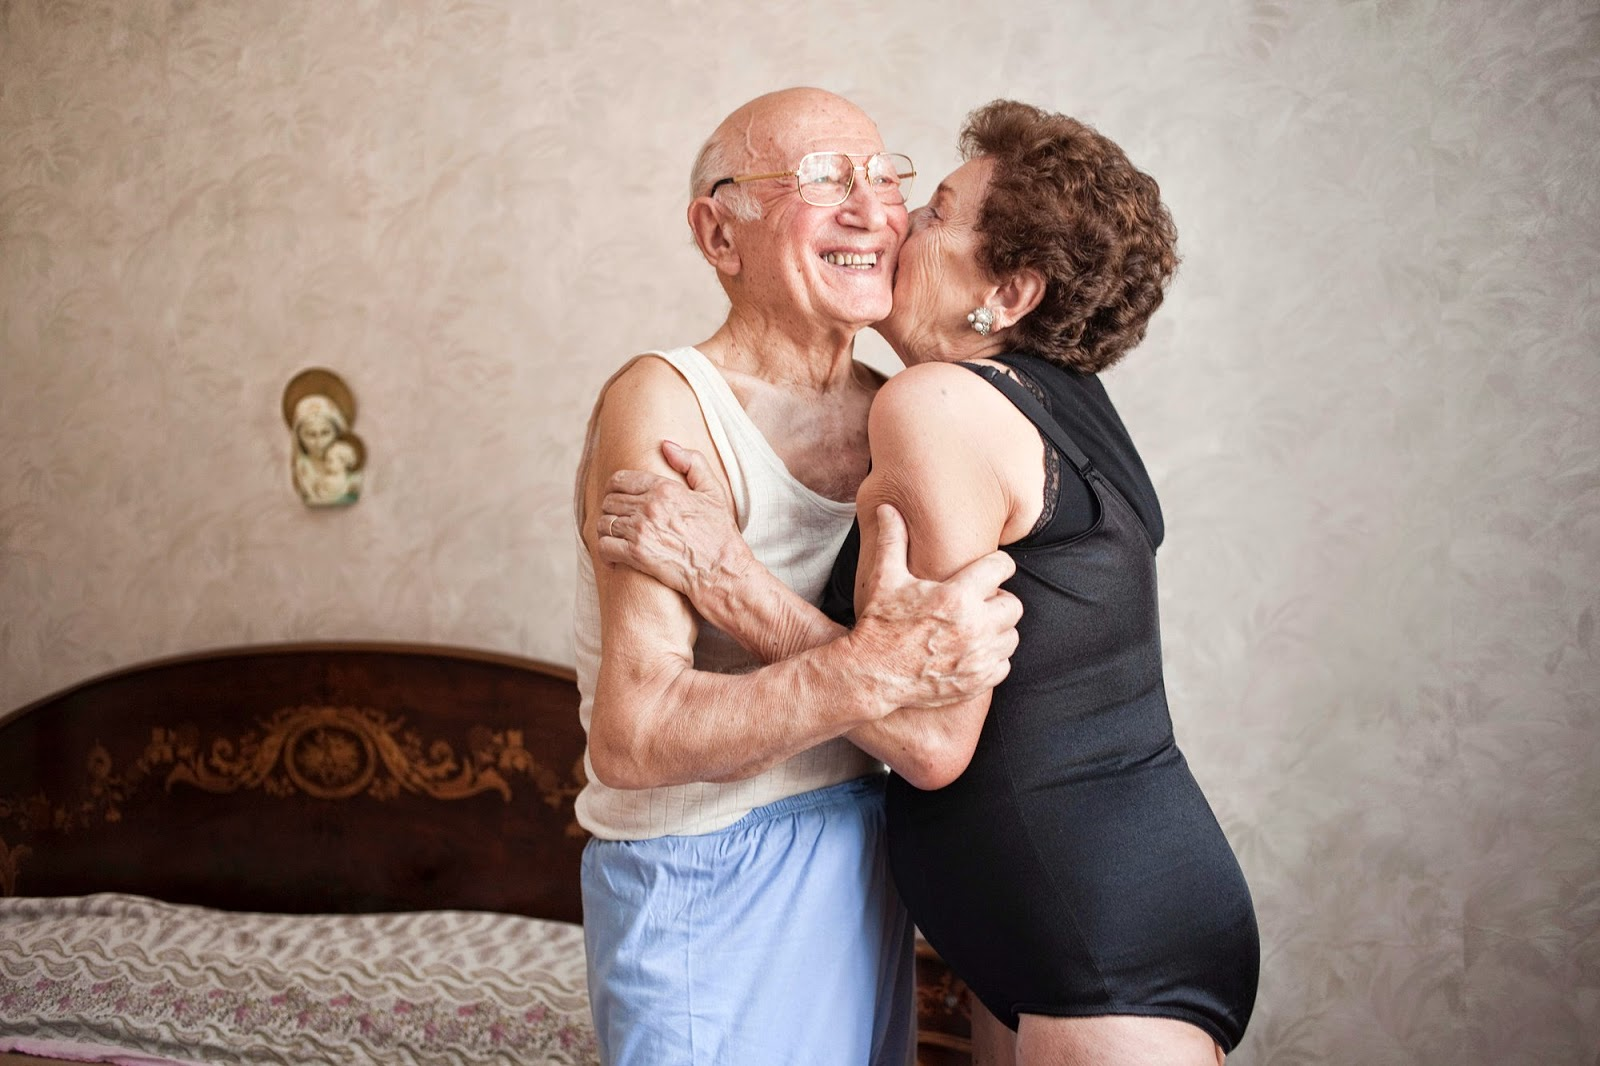 Sexuality and aging articles